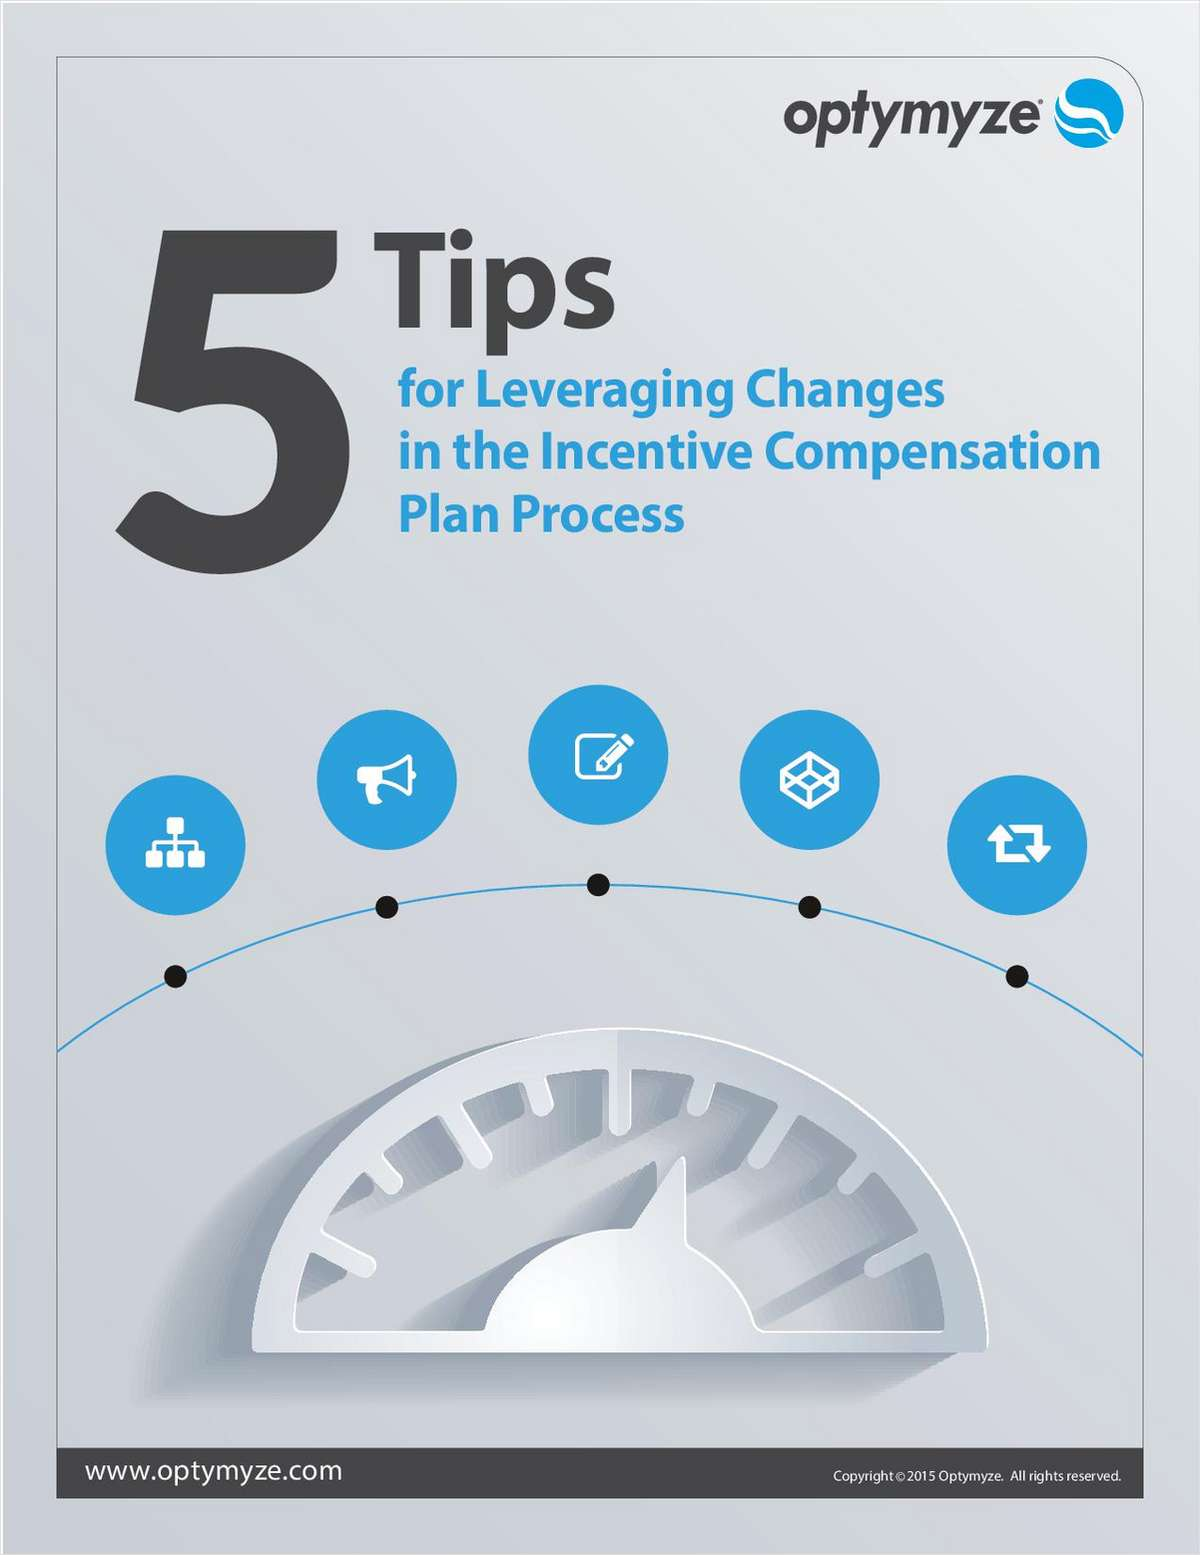 5 Tips for Leveraging Changes in the Incentive Compensation Plan Process